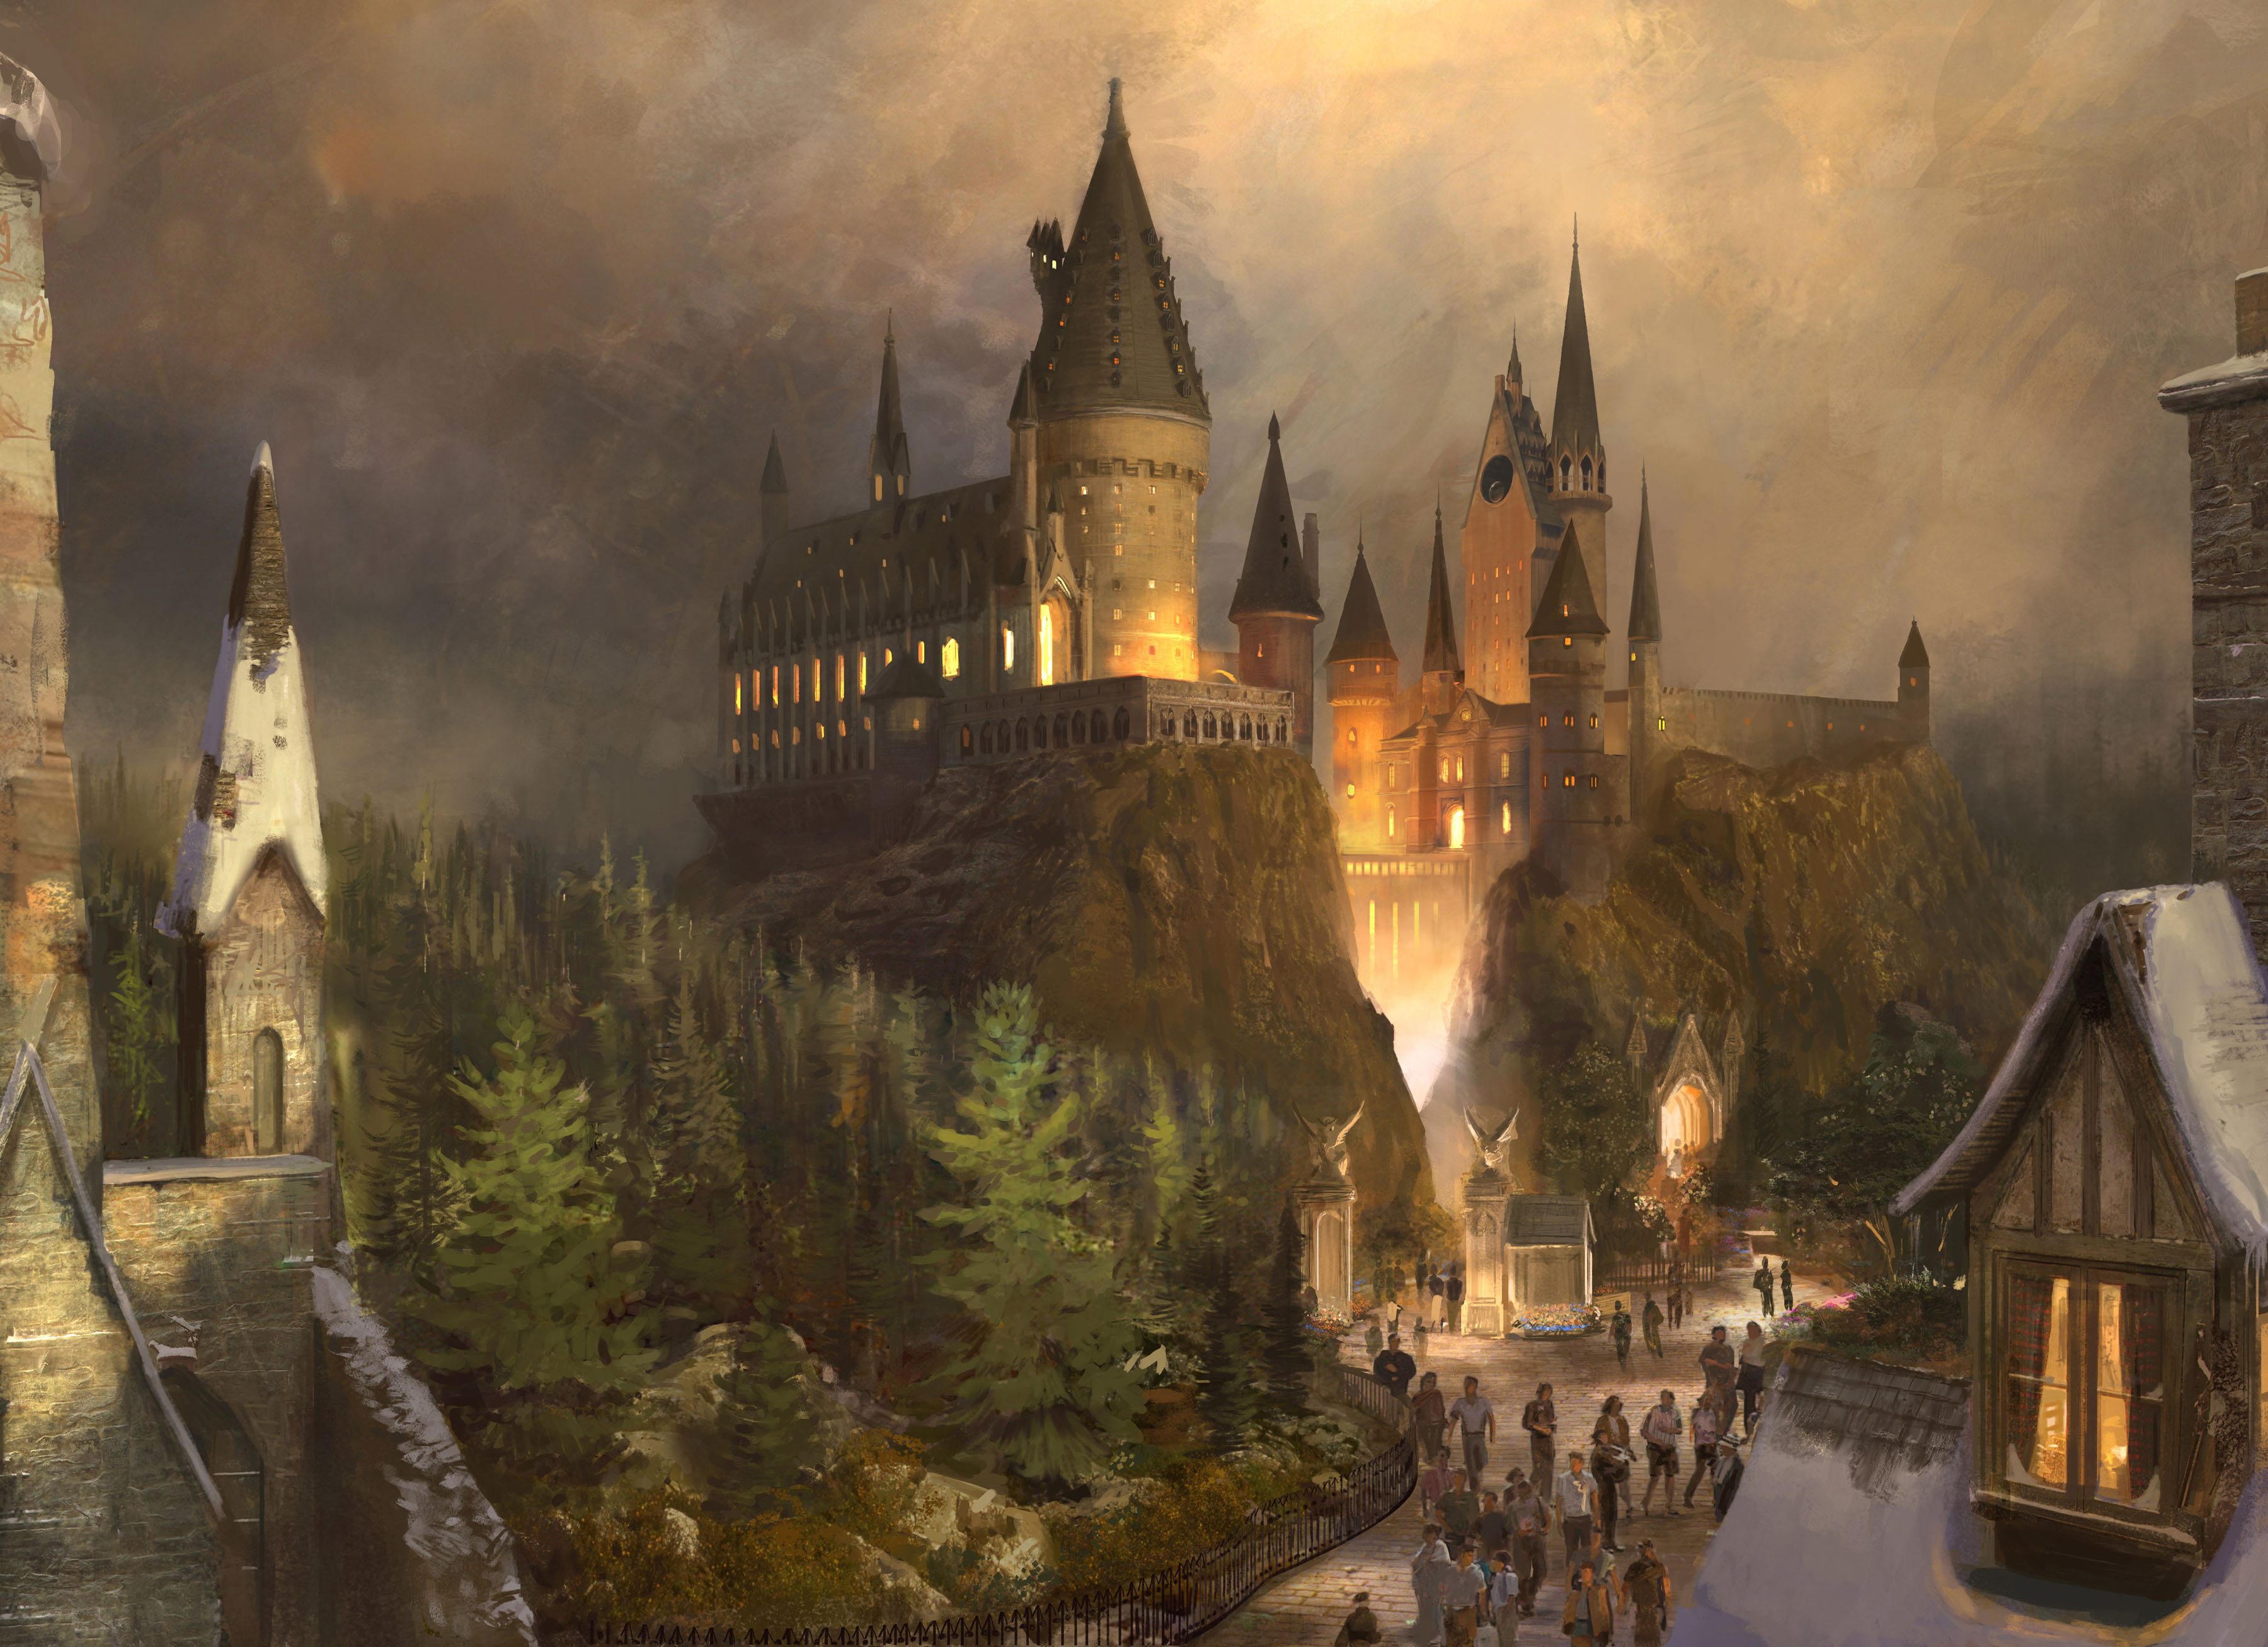 American Equivalent of Hogwarts Confirmed by J.K. Rowling